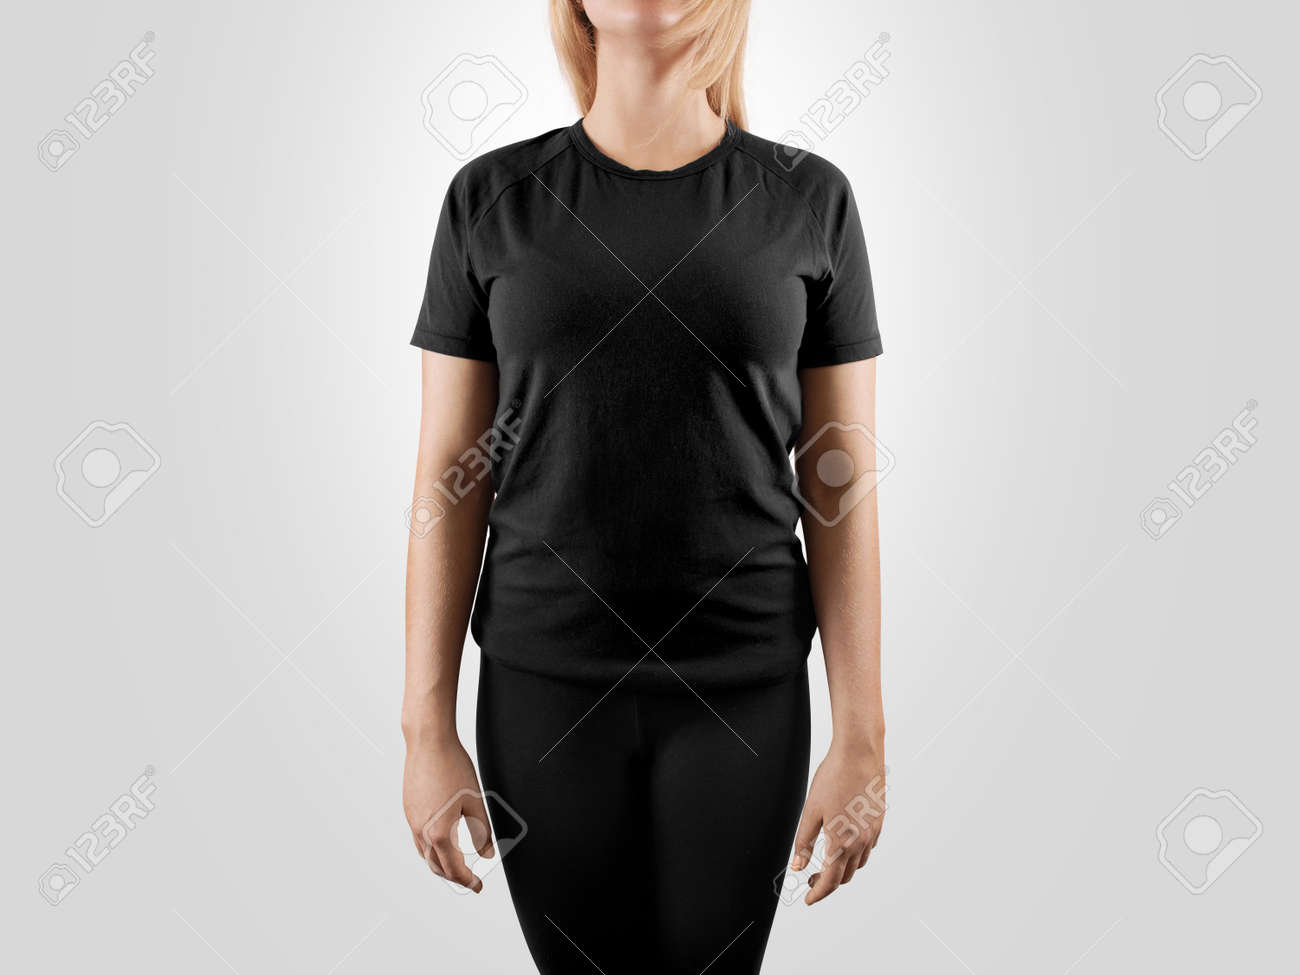 blank black t shirt design mockup isolated women tshirt clear